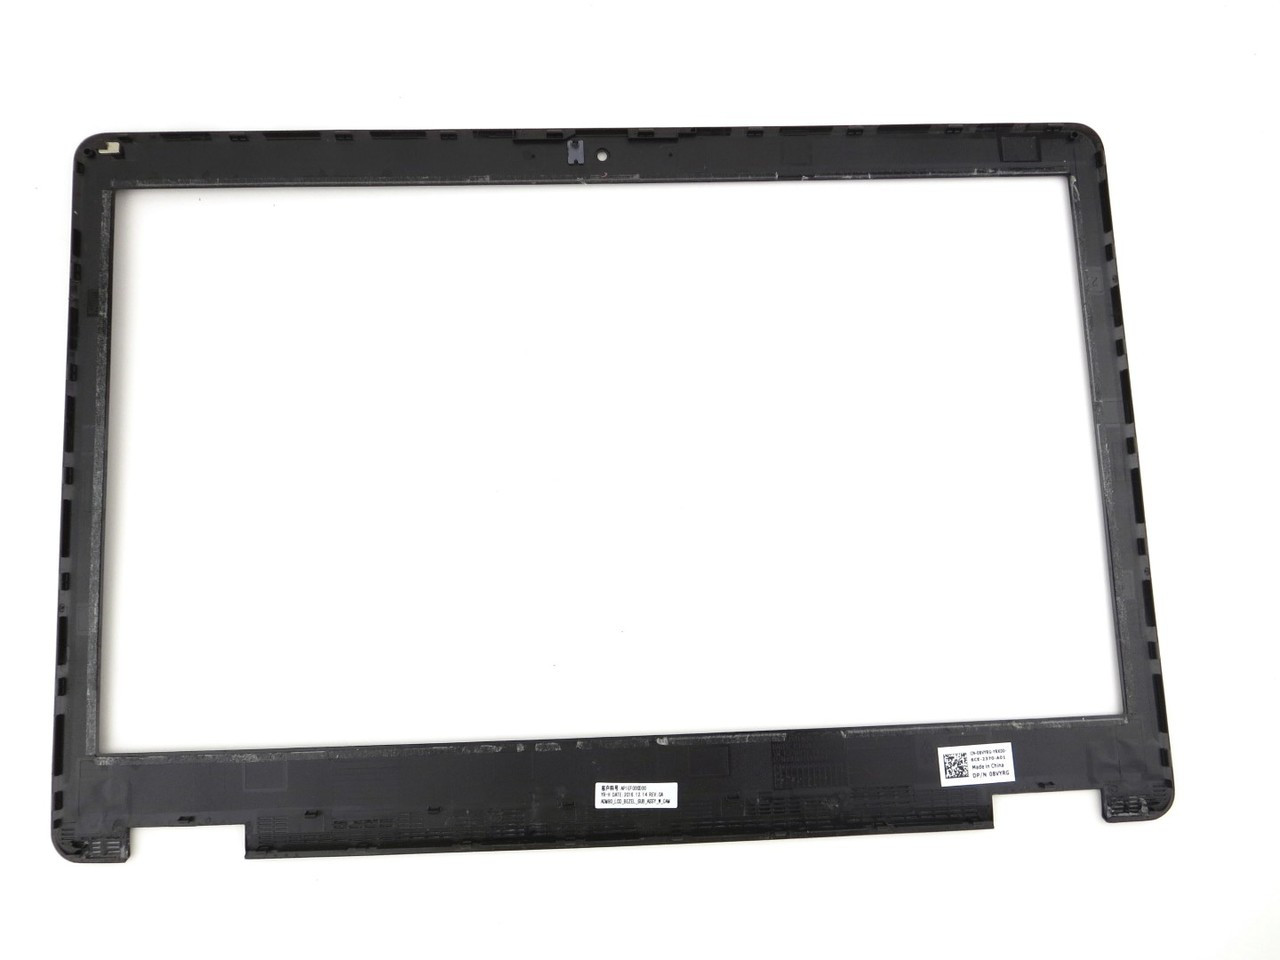 Dell Latitude E5570 / Precision 15 3510 LCD Front Trim Cover Bezel Plastic - With Camera Port - Non Touchscreen - 8VYRG 08VYRG